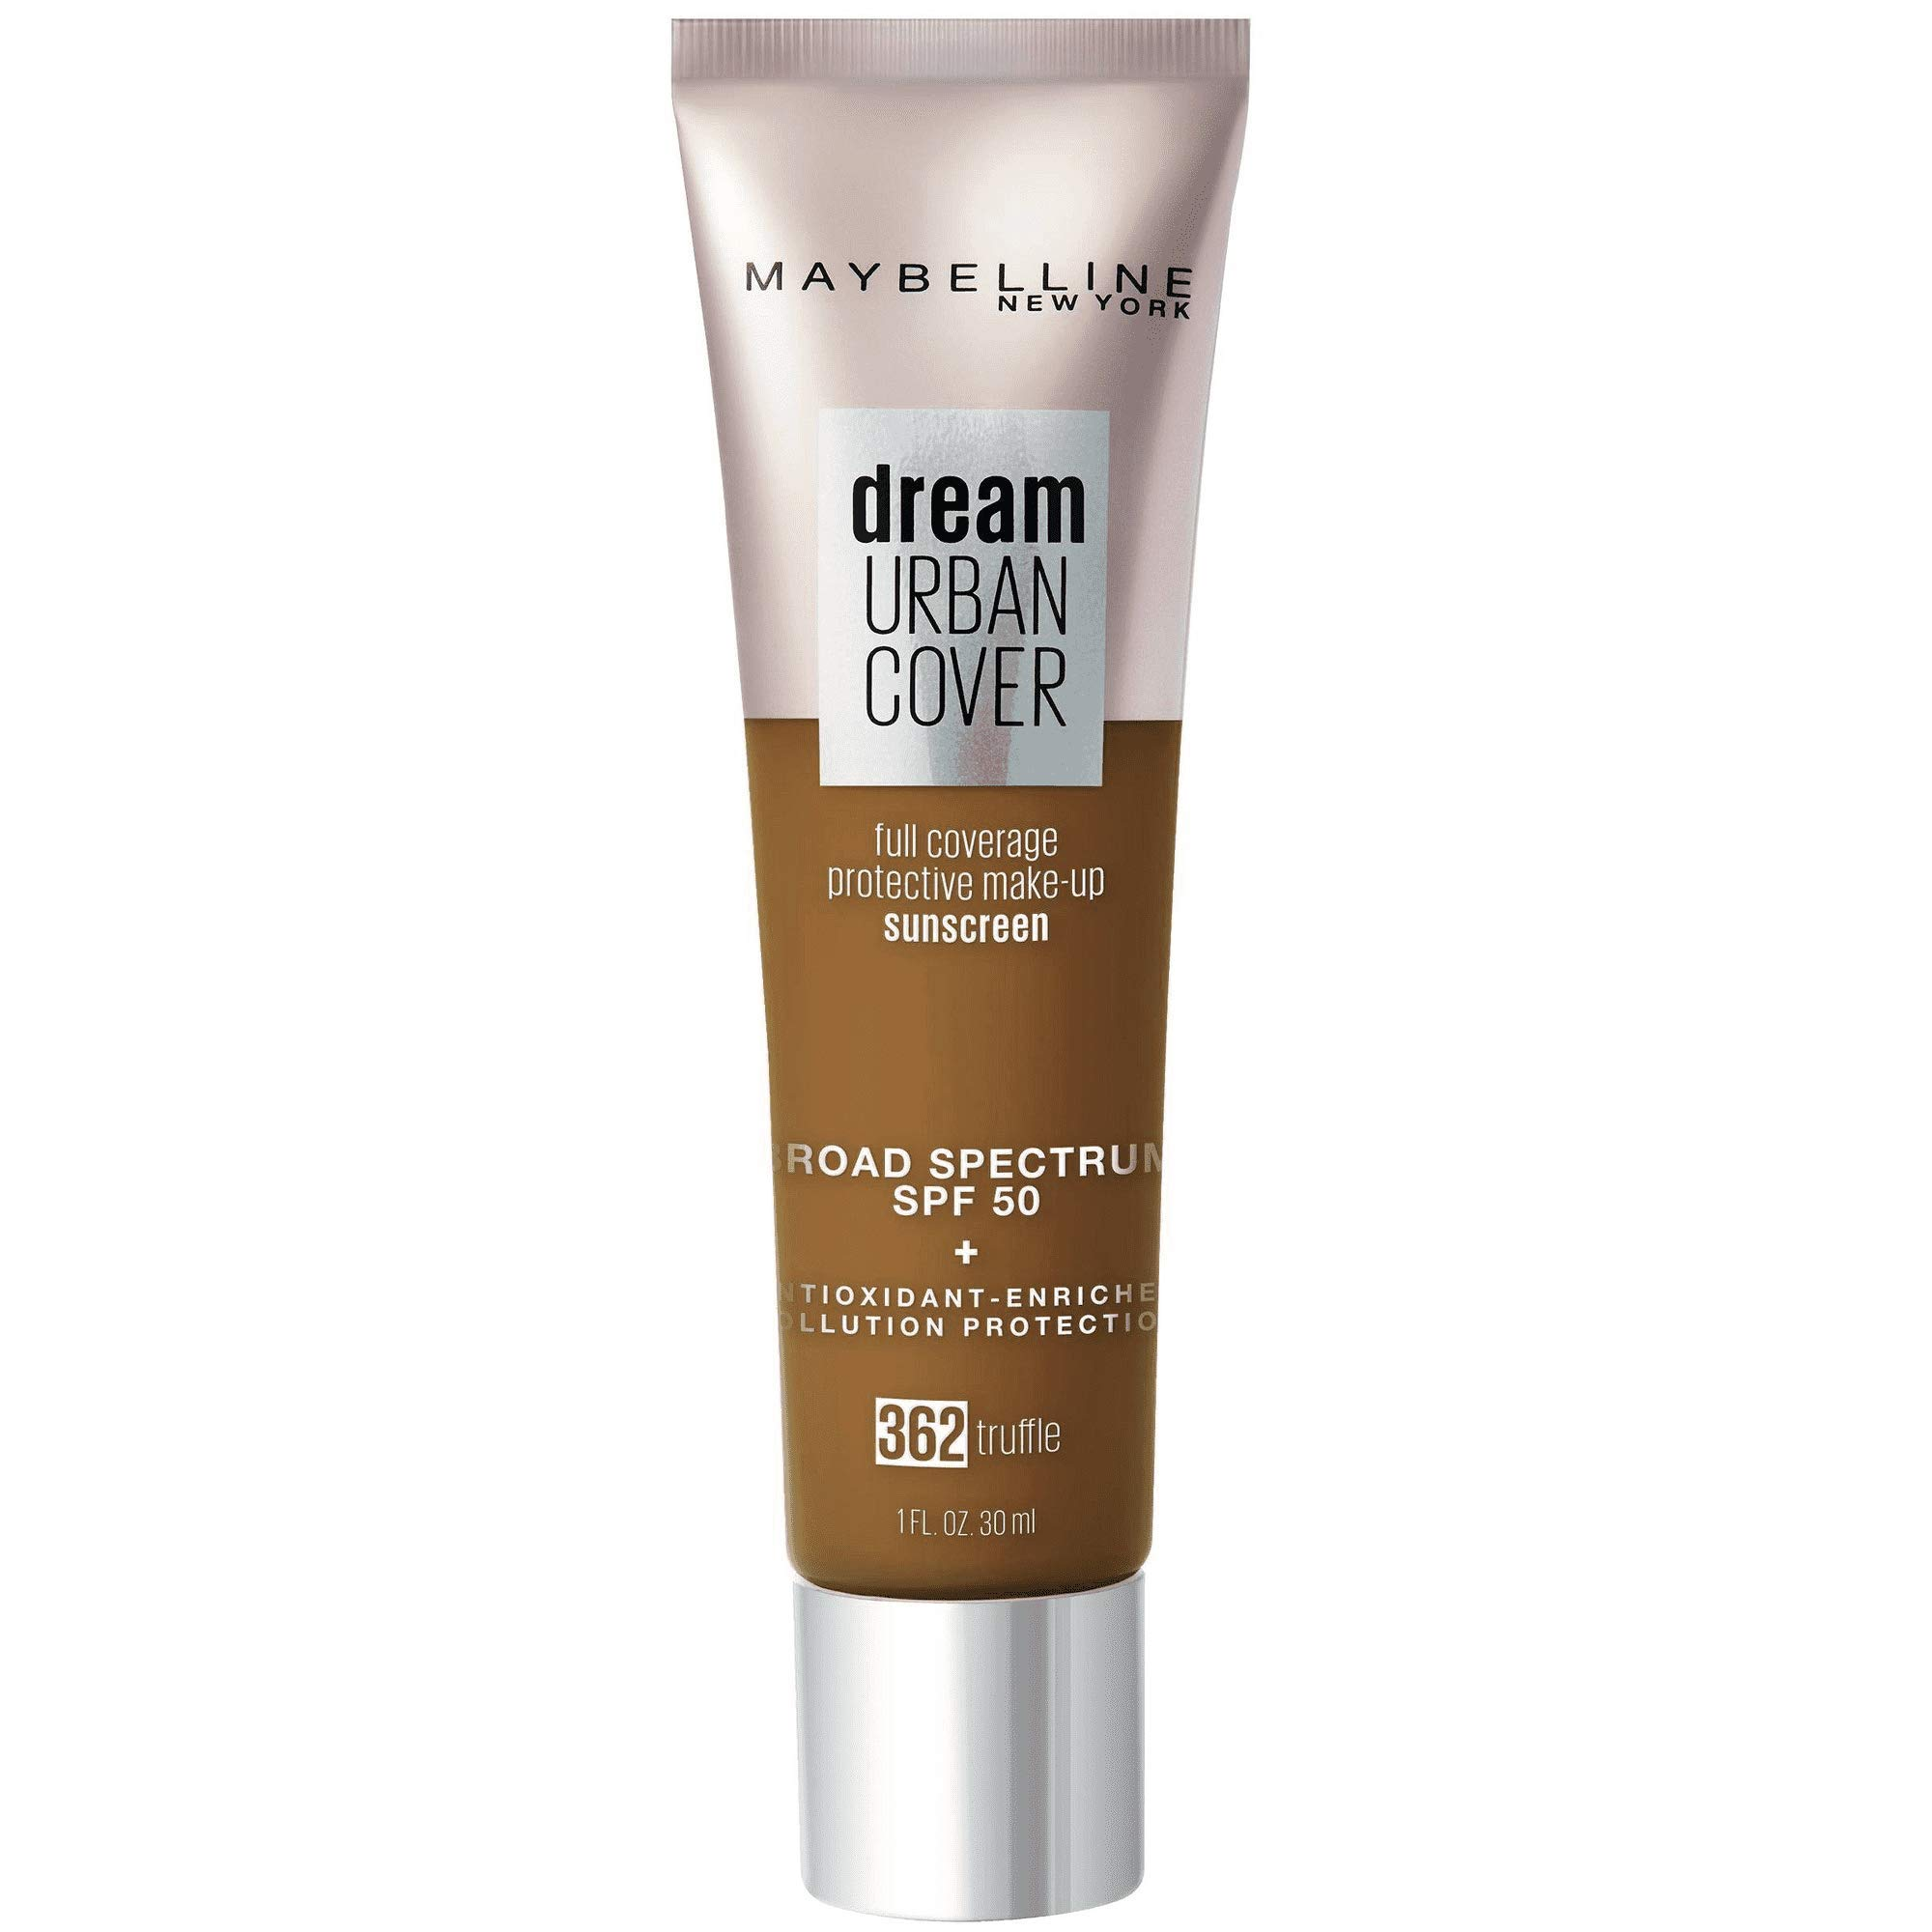 Dream Urban Cover Full Coverage Protective Sunscreen Makeup, 362 Truffle, 1 fl oz (Pack of 2)